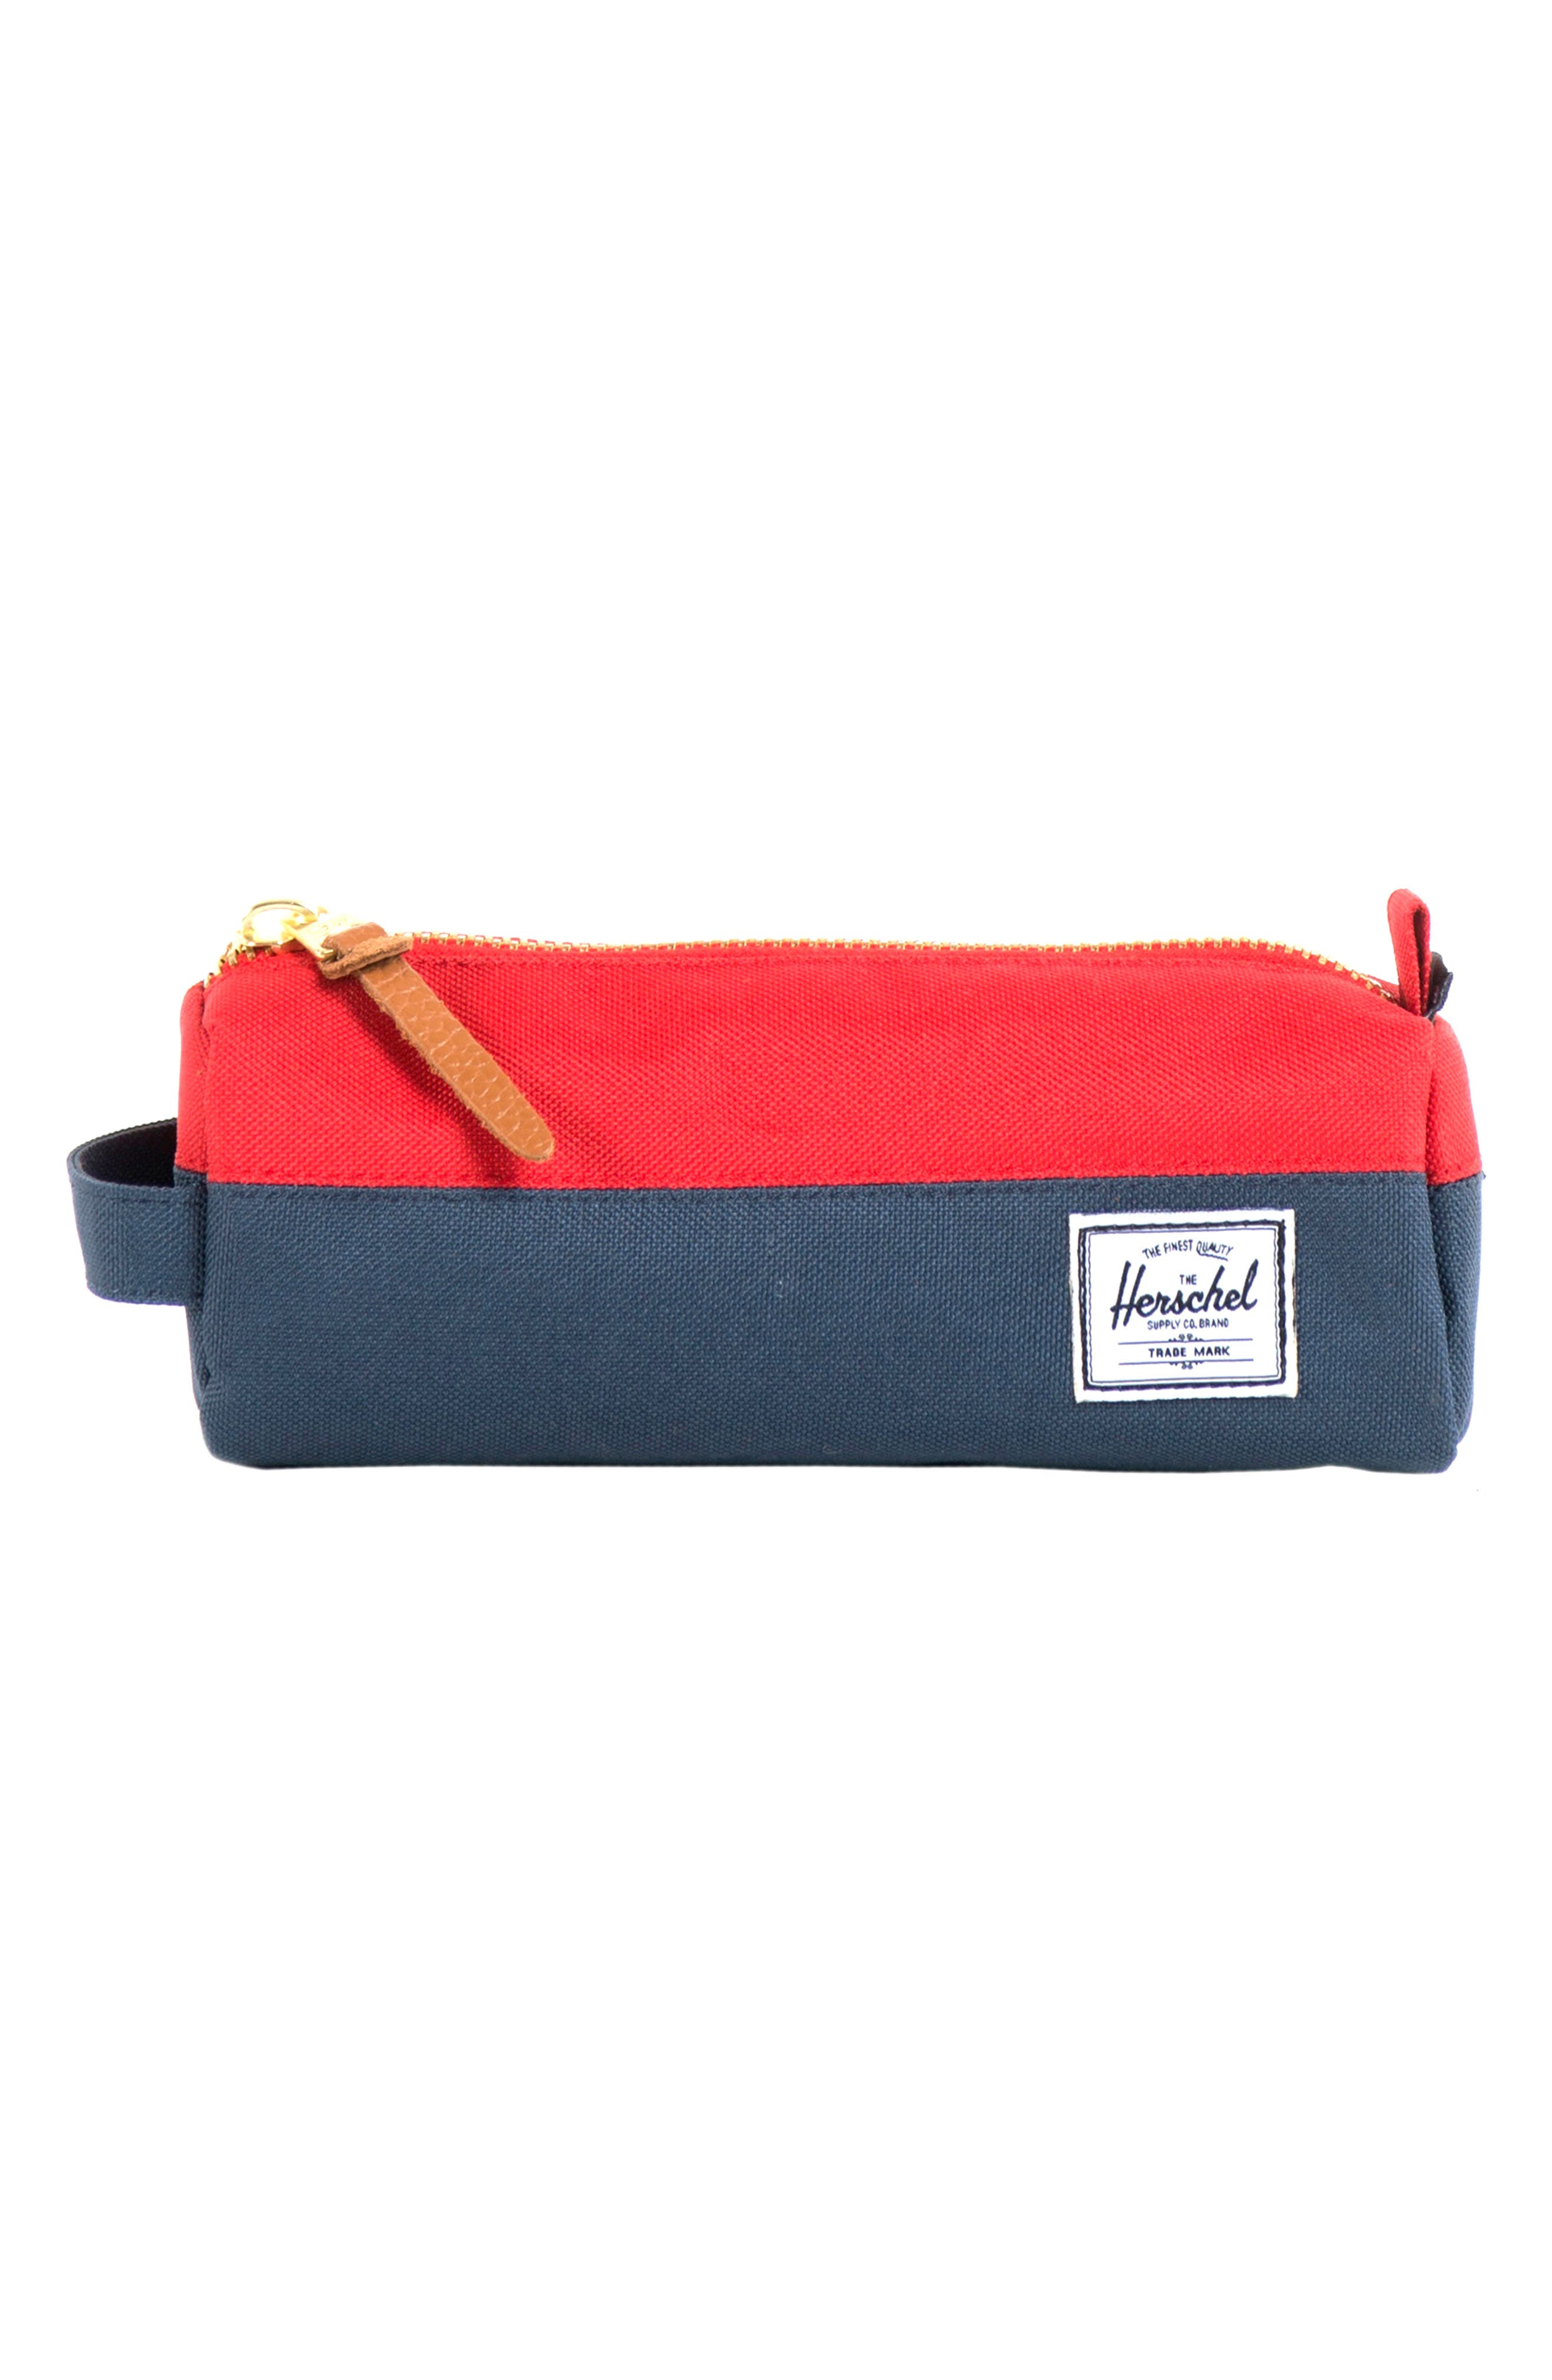 Settlement Travel Case,                         Main,                         color, NAVY/ RED